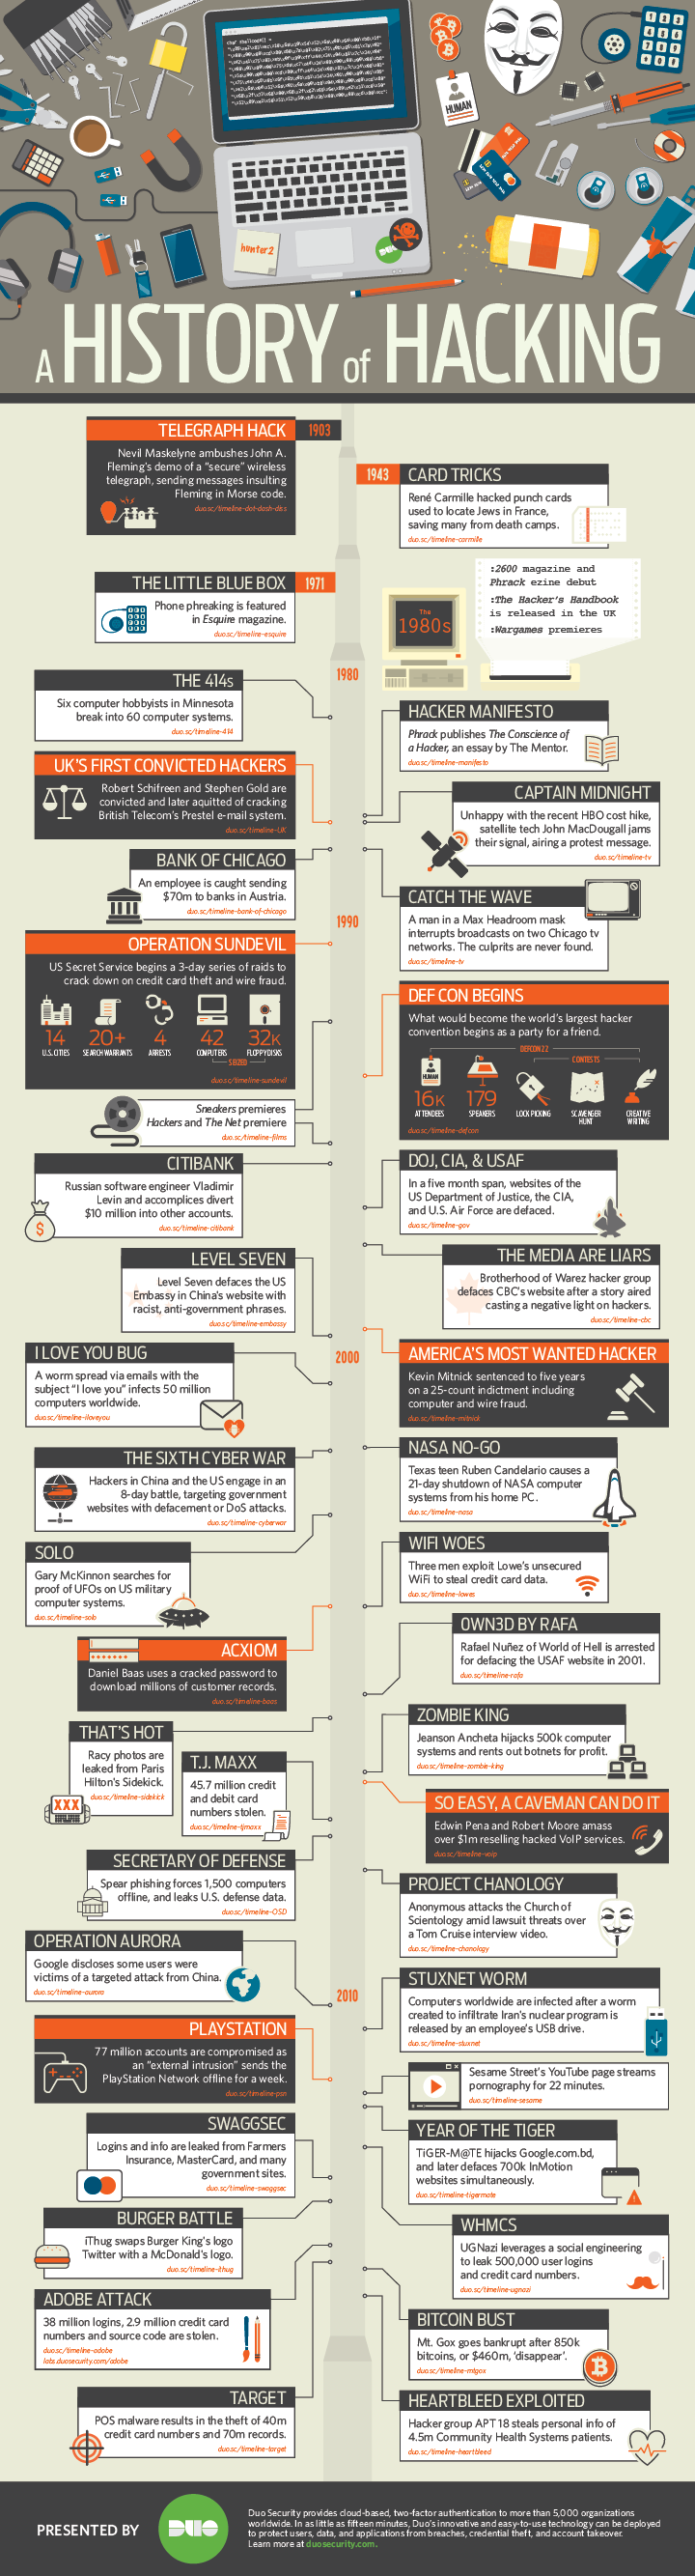 A HISTORY OF HACKING